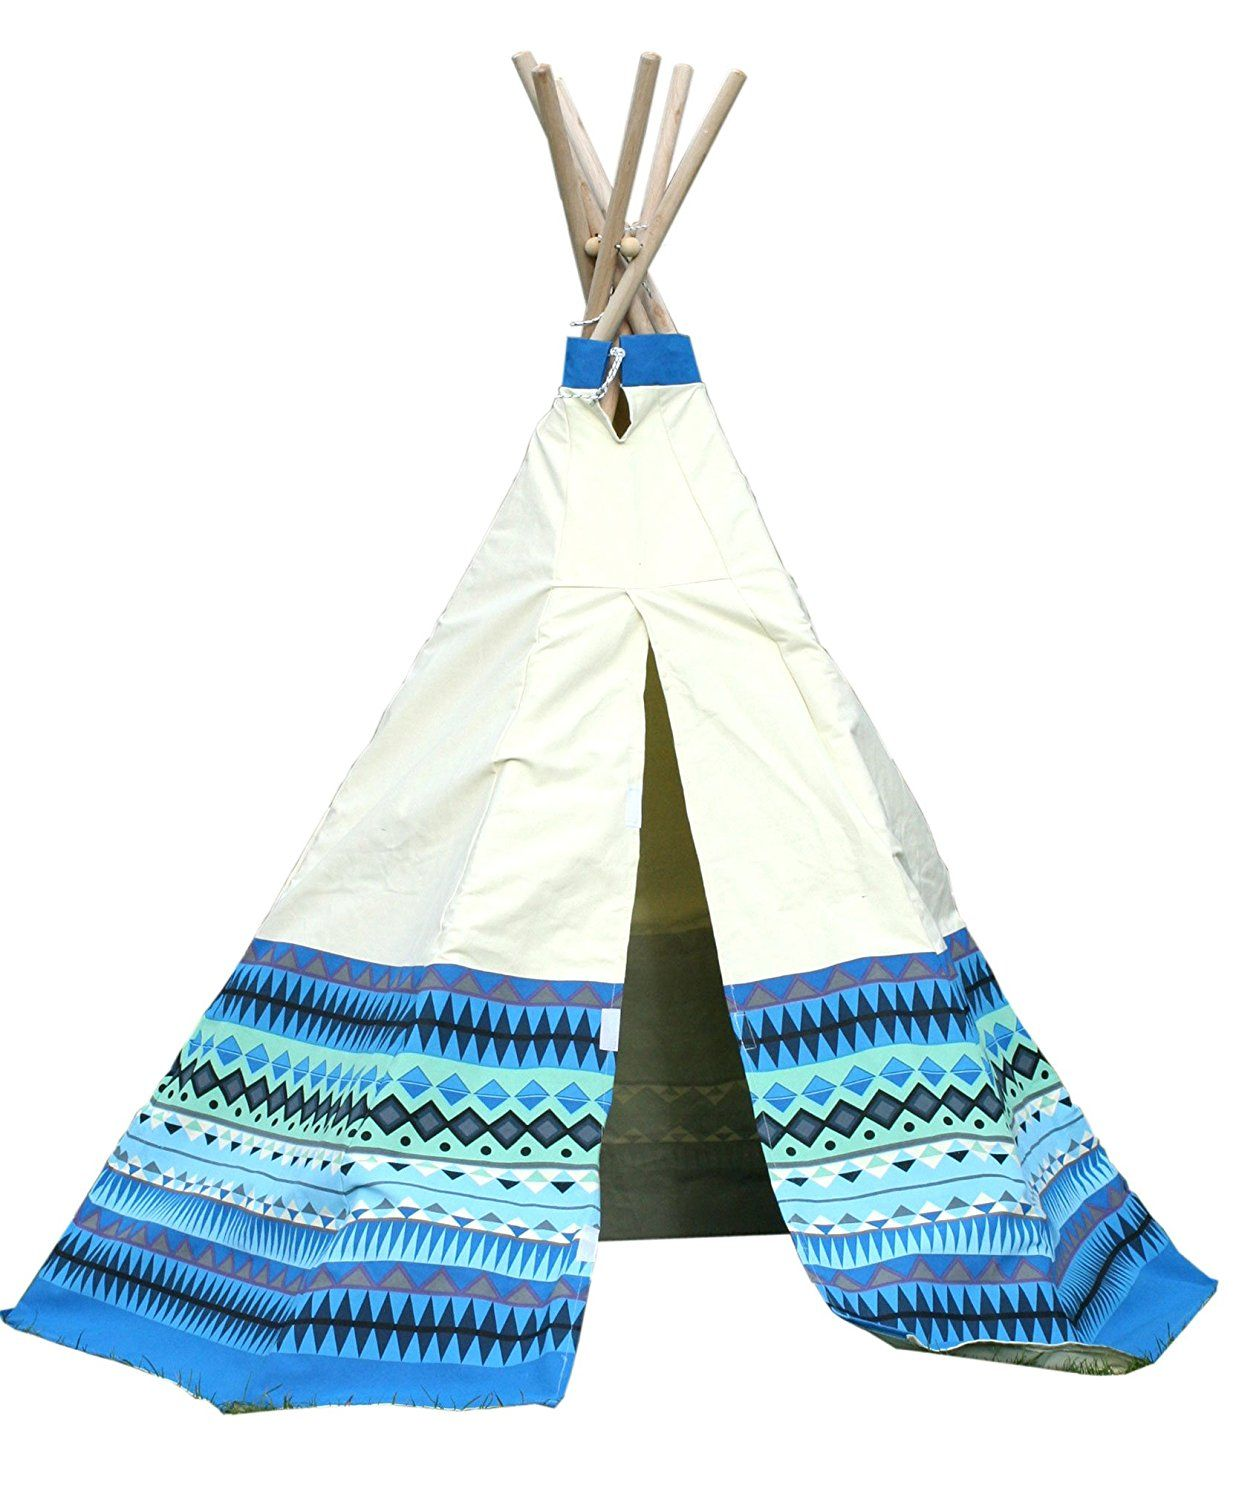 Garden Games Limited Childrenu0027s Aztec Teepee Wigwam Play Tent with Wooden Frame and Natural Cotton Canvas  sc 1 st  Pinterest & Garden Games Limited Childrenu0027s Aztec Teepee Wigwam Play Tent with ...